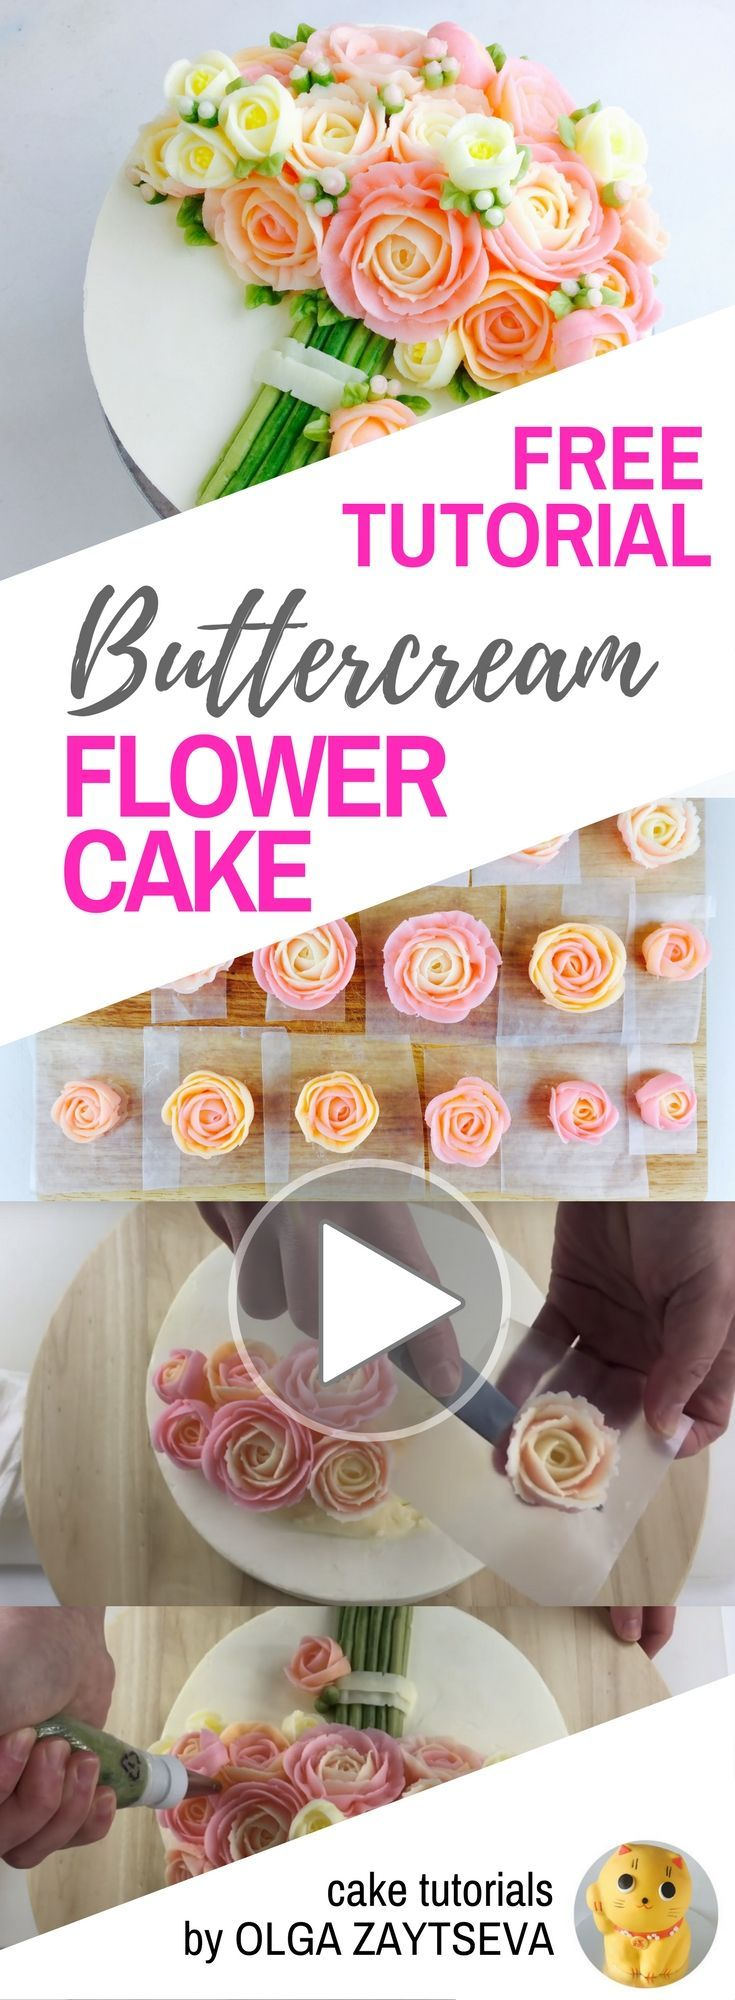 HOT CAKE TRENDS How to make Pink Roses Buttercream bouquet cake - Cake decorating tutorial by Olga Zaytseva. Learn how to pipe tiny jasmine, roses and buds and assemble a buttercream flower bouquet cake in variety of pink shades. #cakedecorating